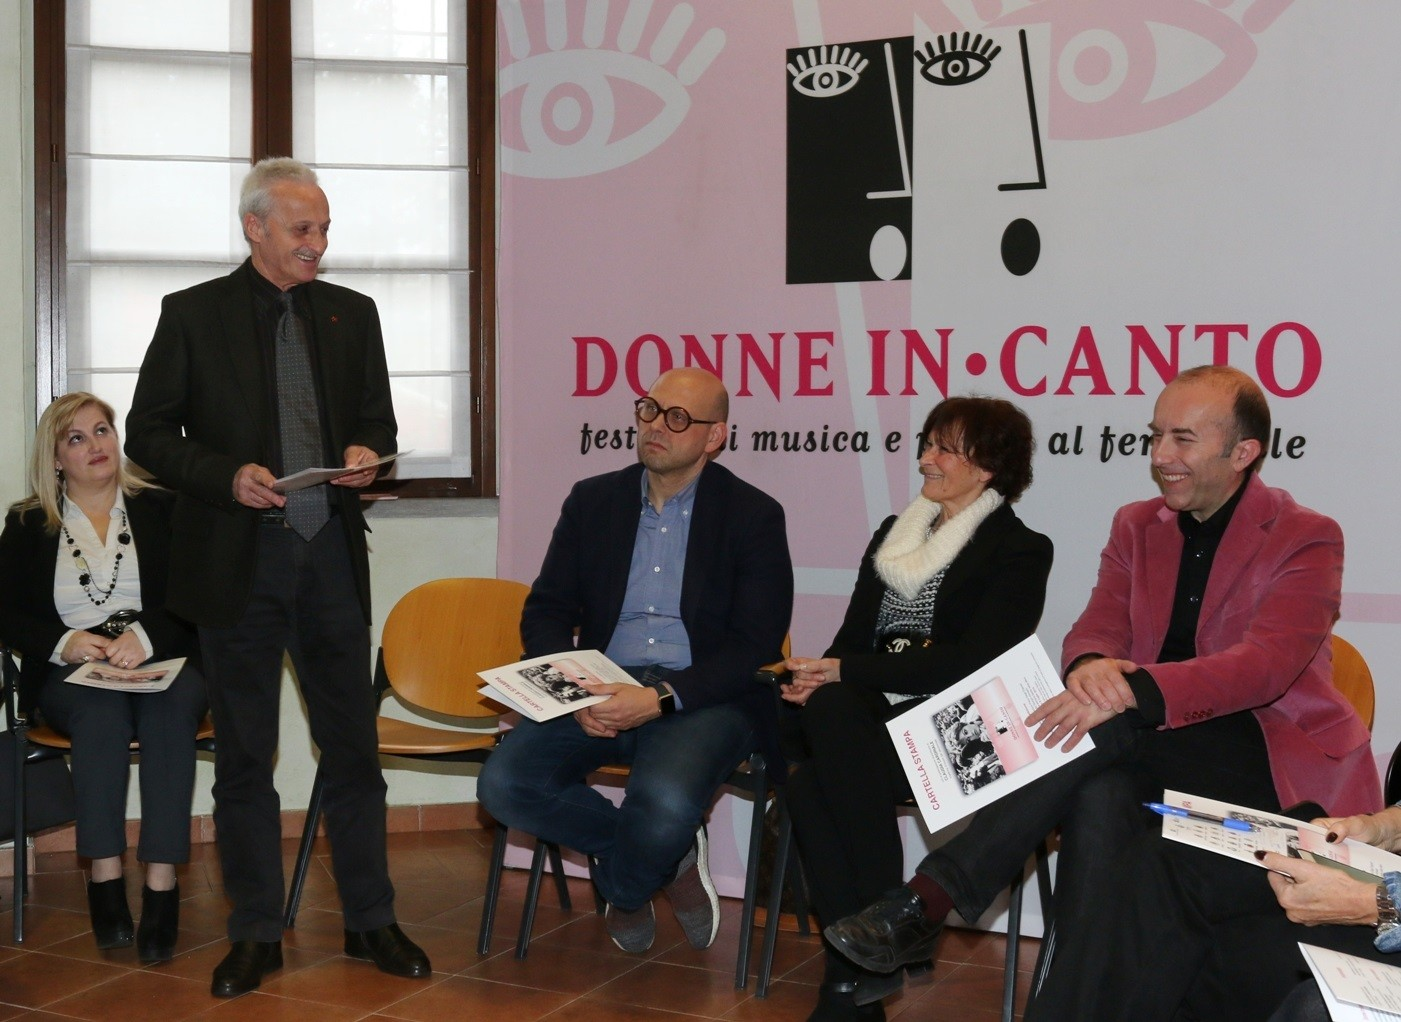 Donne in canto 1